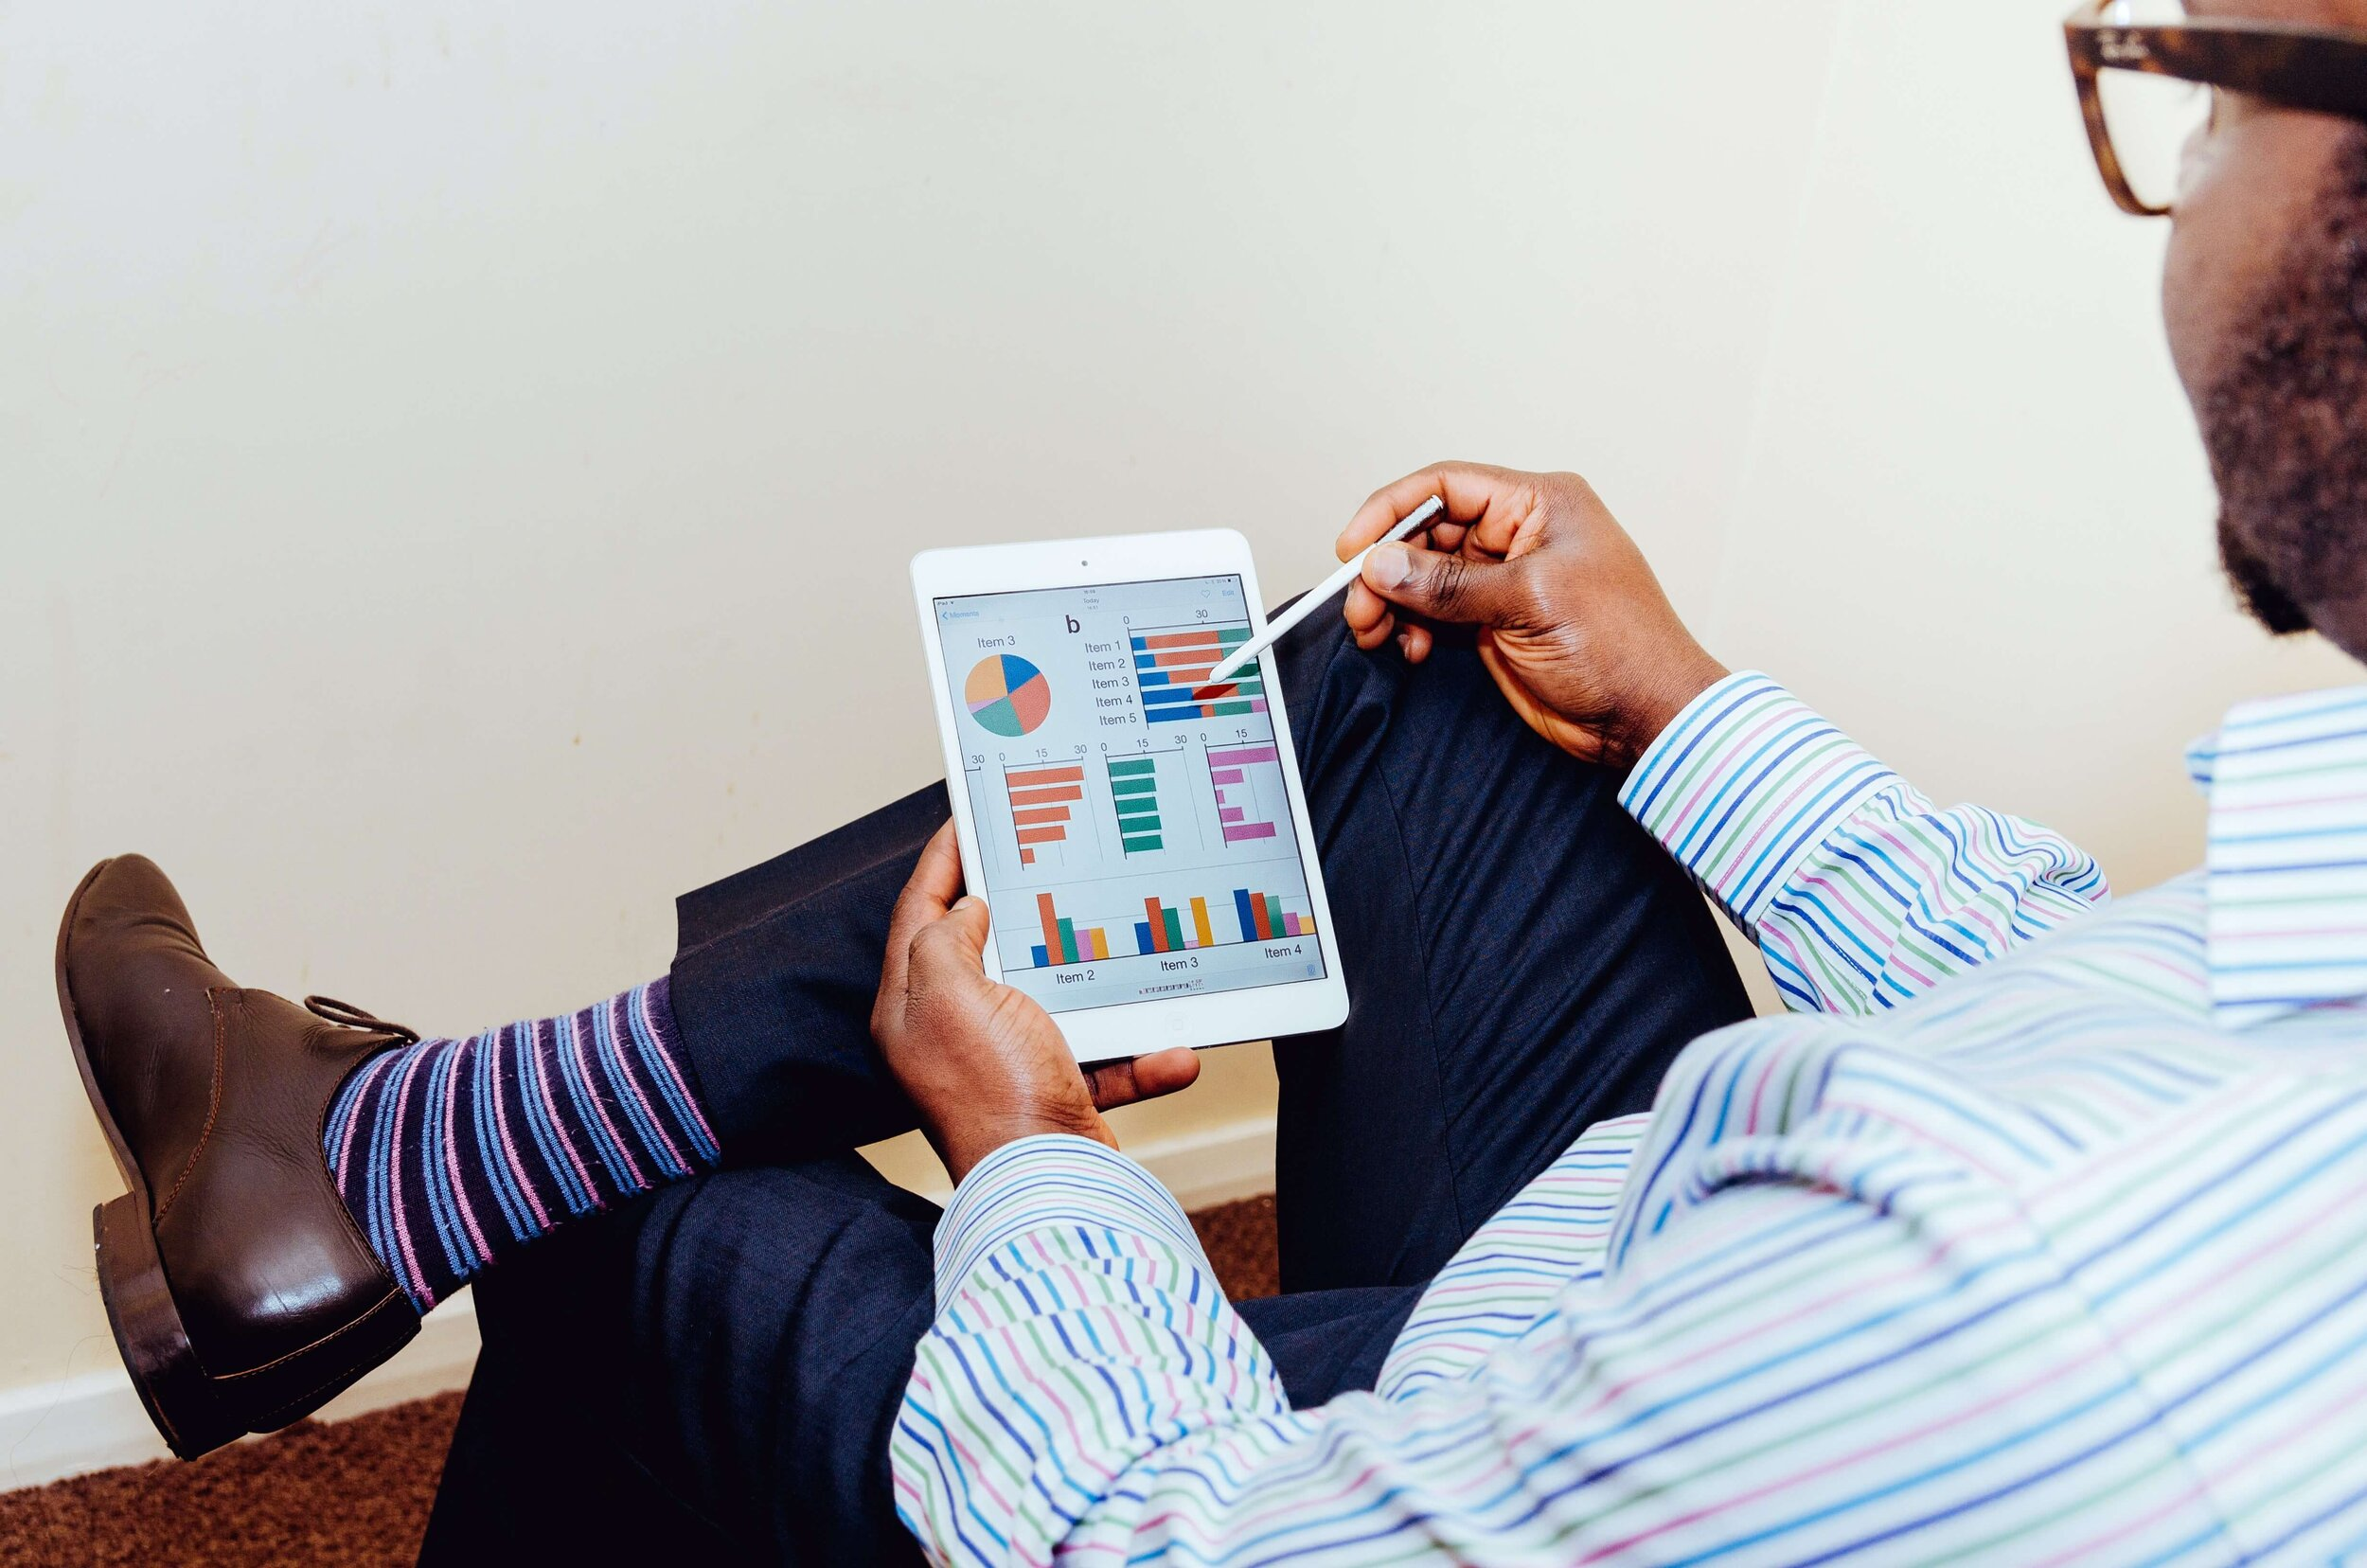 man-reviewing-graphs-and-charts-on-tablet